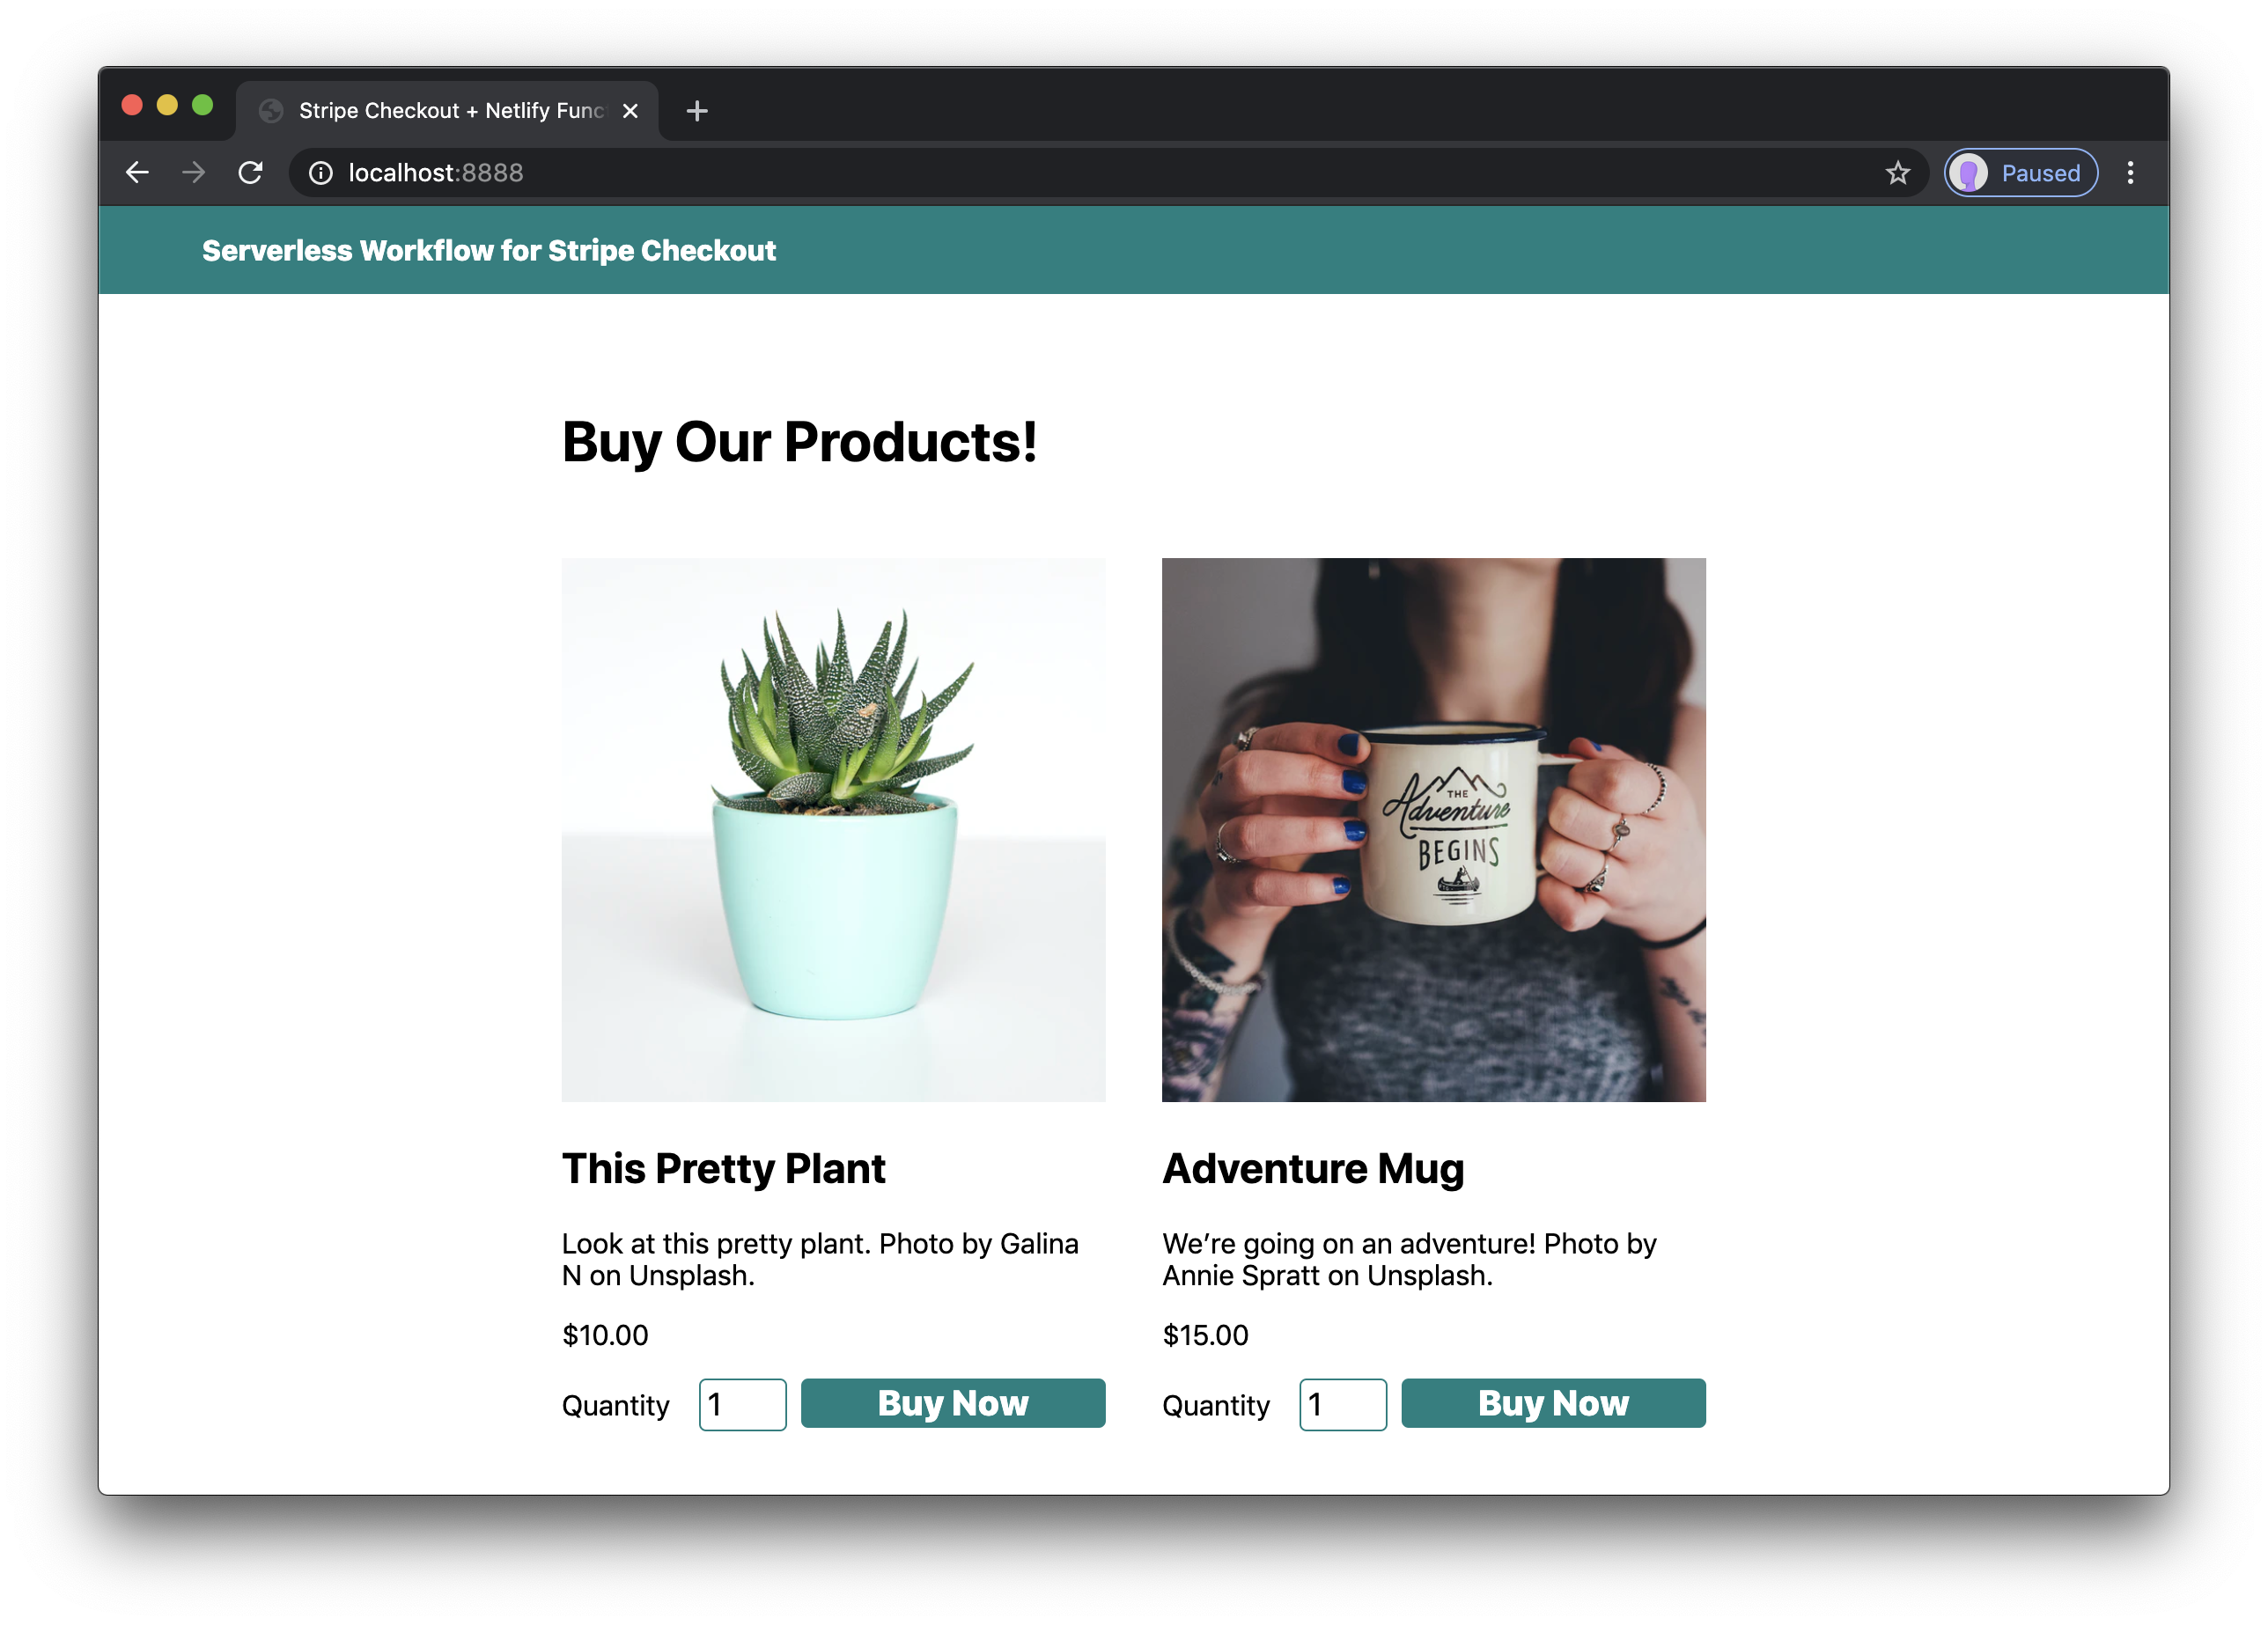 styled products in the browser